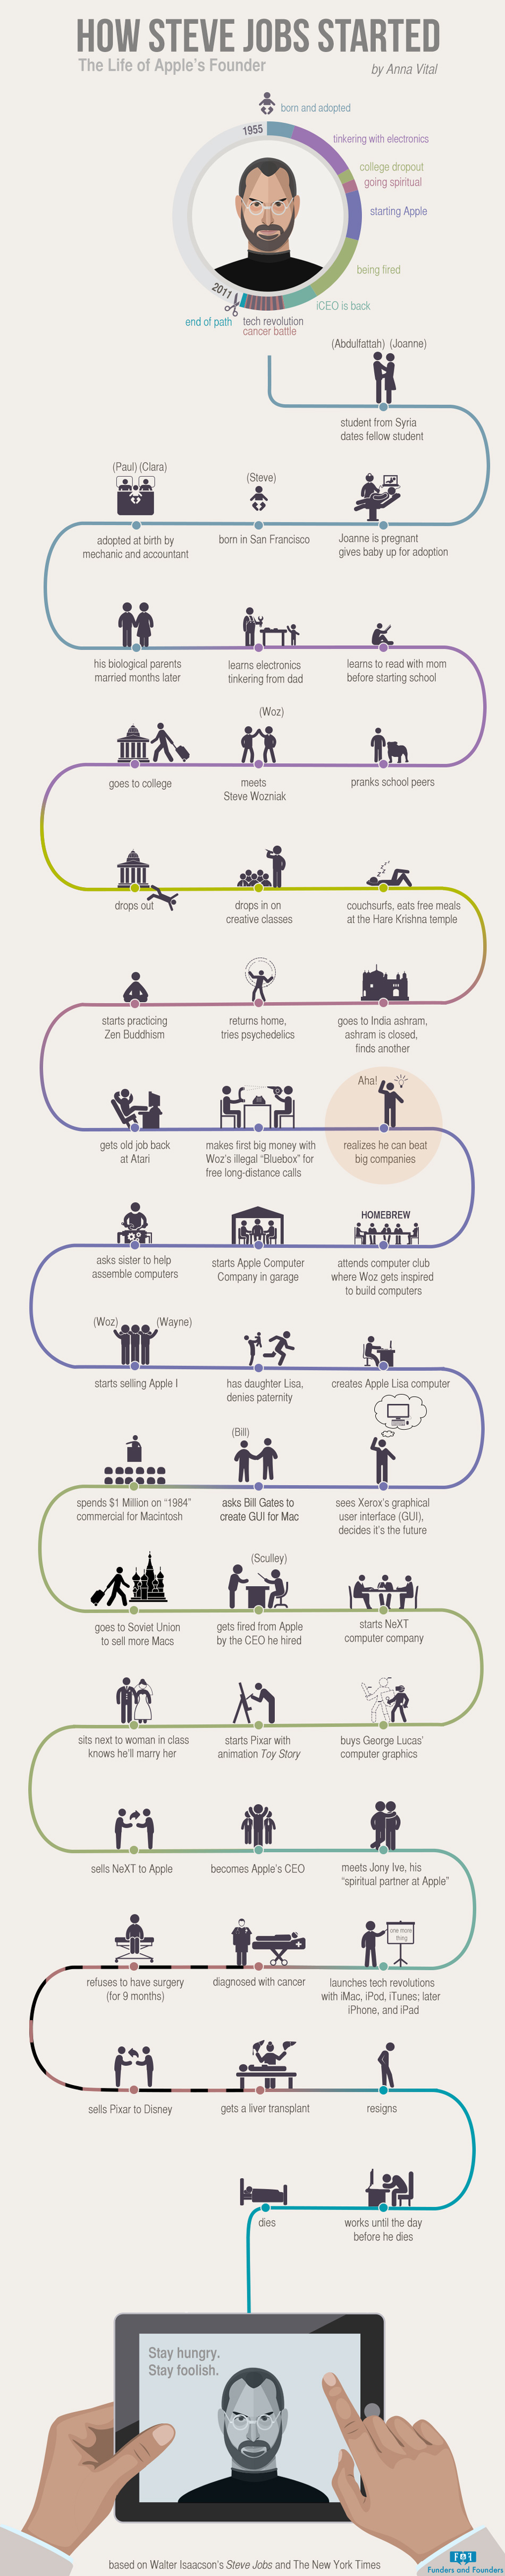 How Steve Jobs Started U2013 The Life Of Visionary Genius [infographic]  Steve Jobs Resume